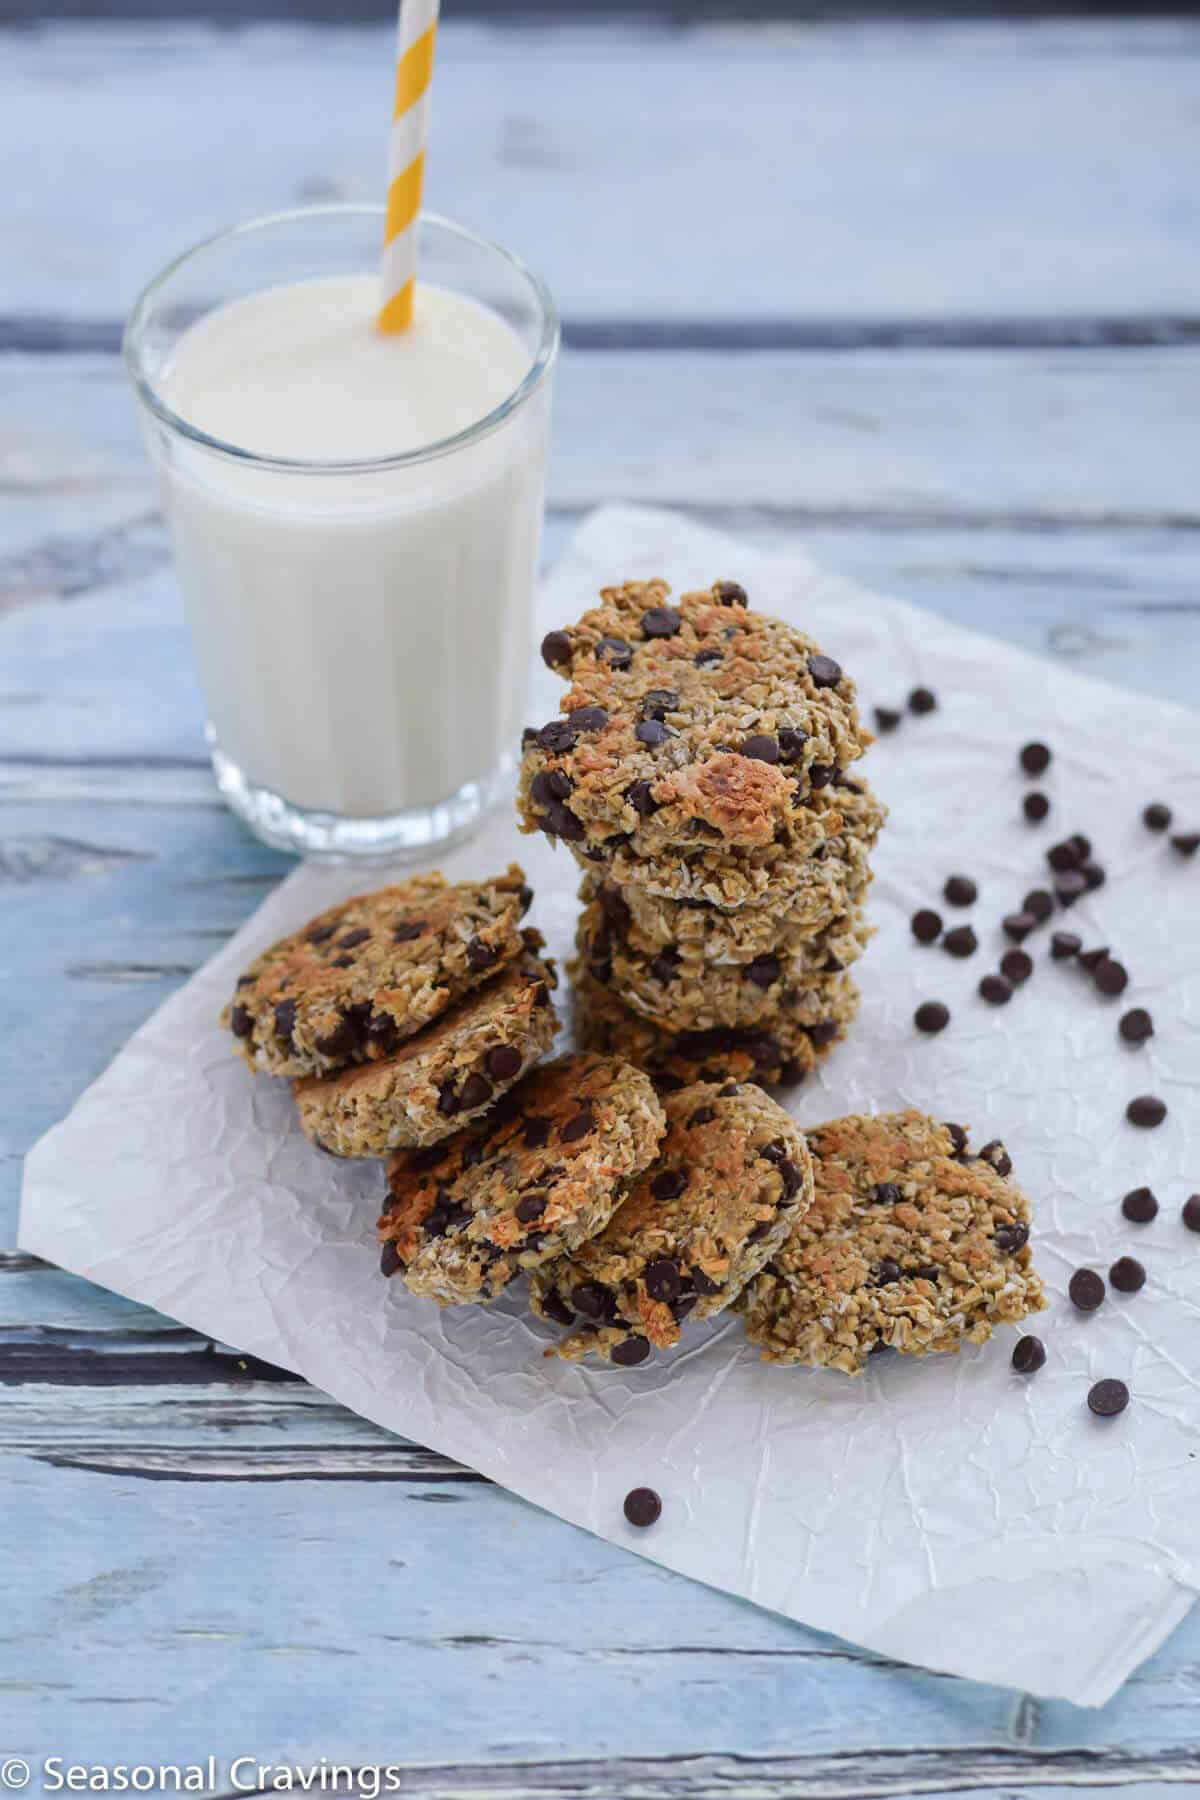 Gluten Free Breakfast Cookies with a glass of milk on blue background